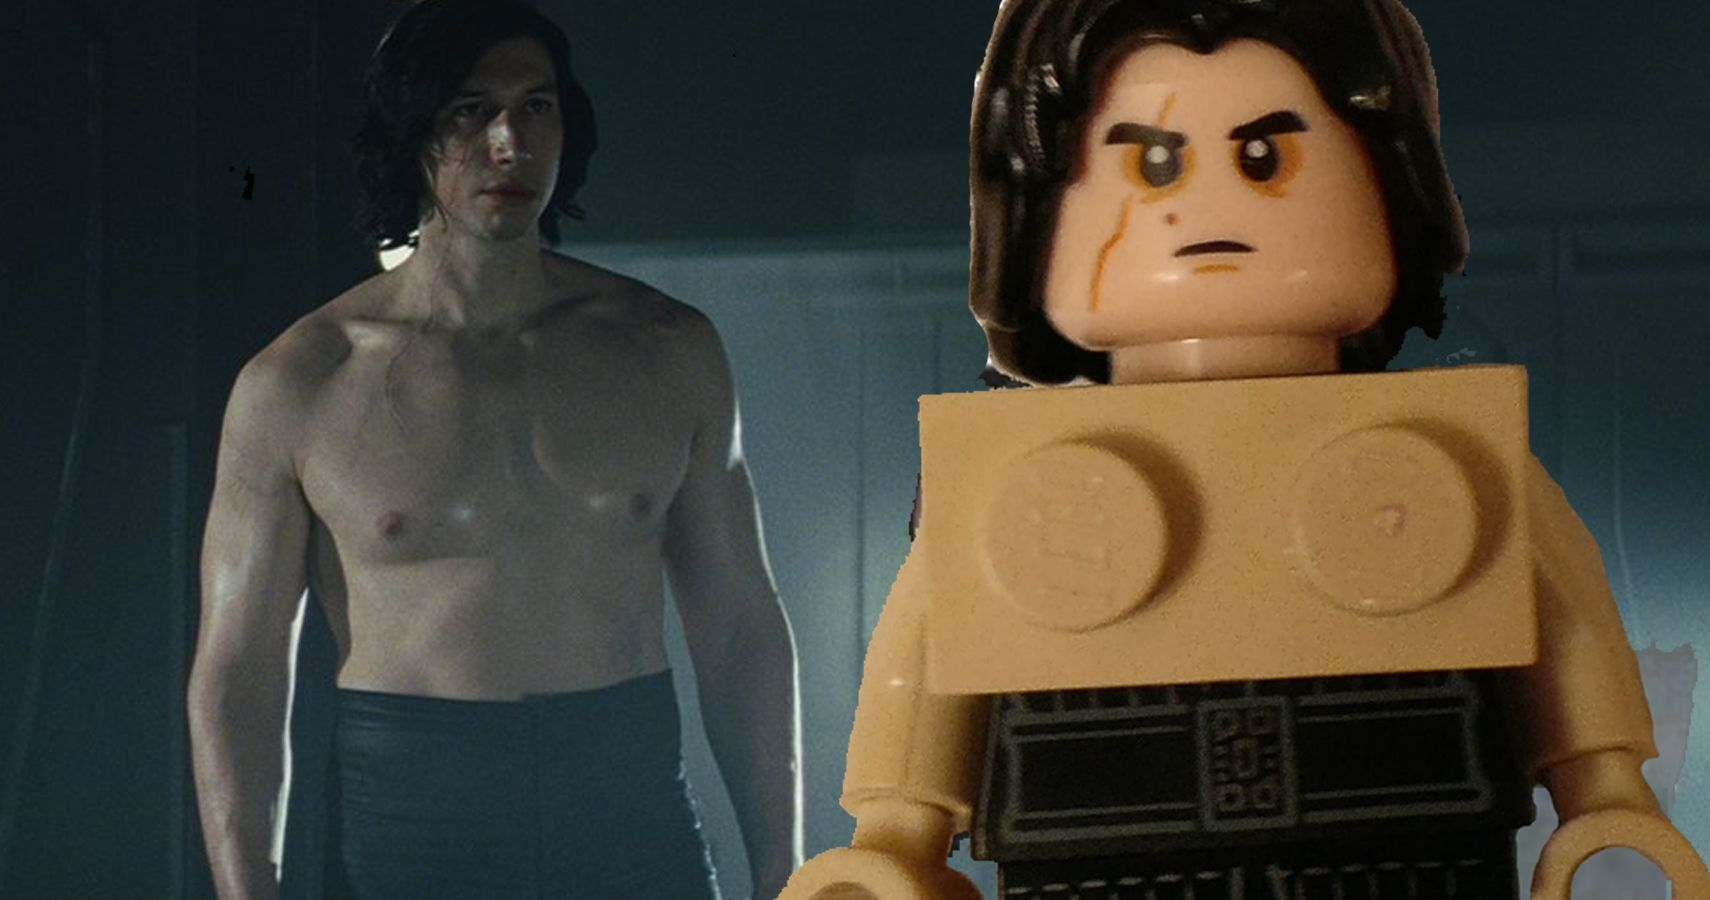 10 Best Takes On The Shirtless Kylo Ren Star Wars Meme Cbr